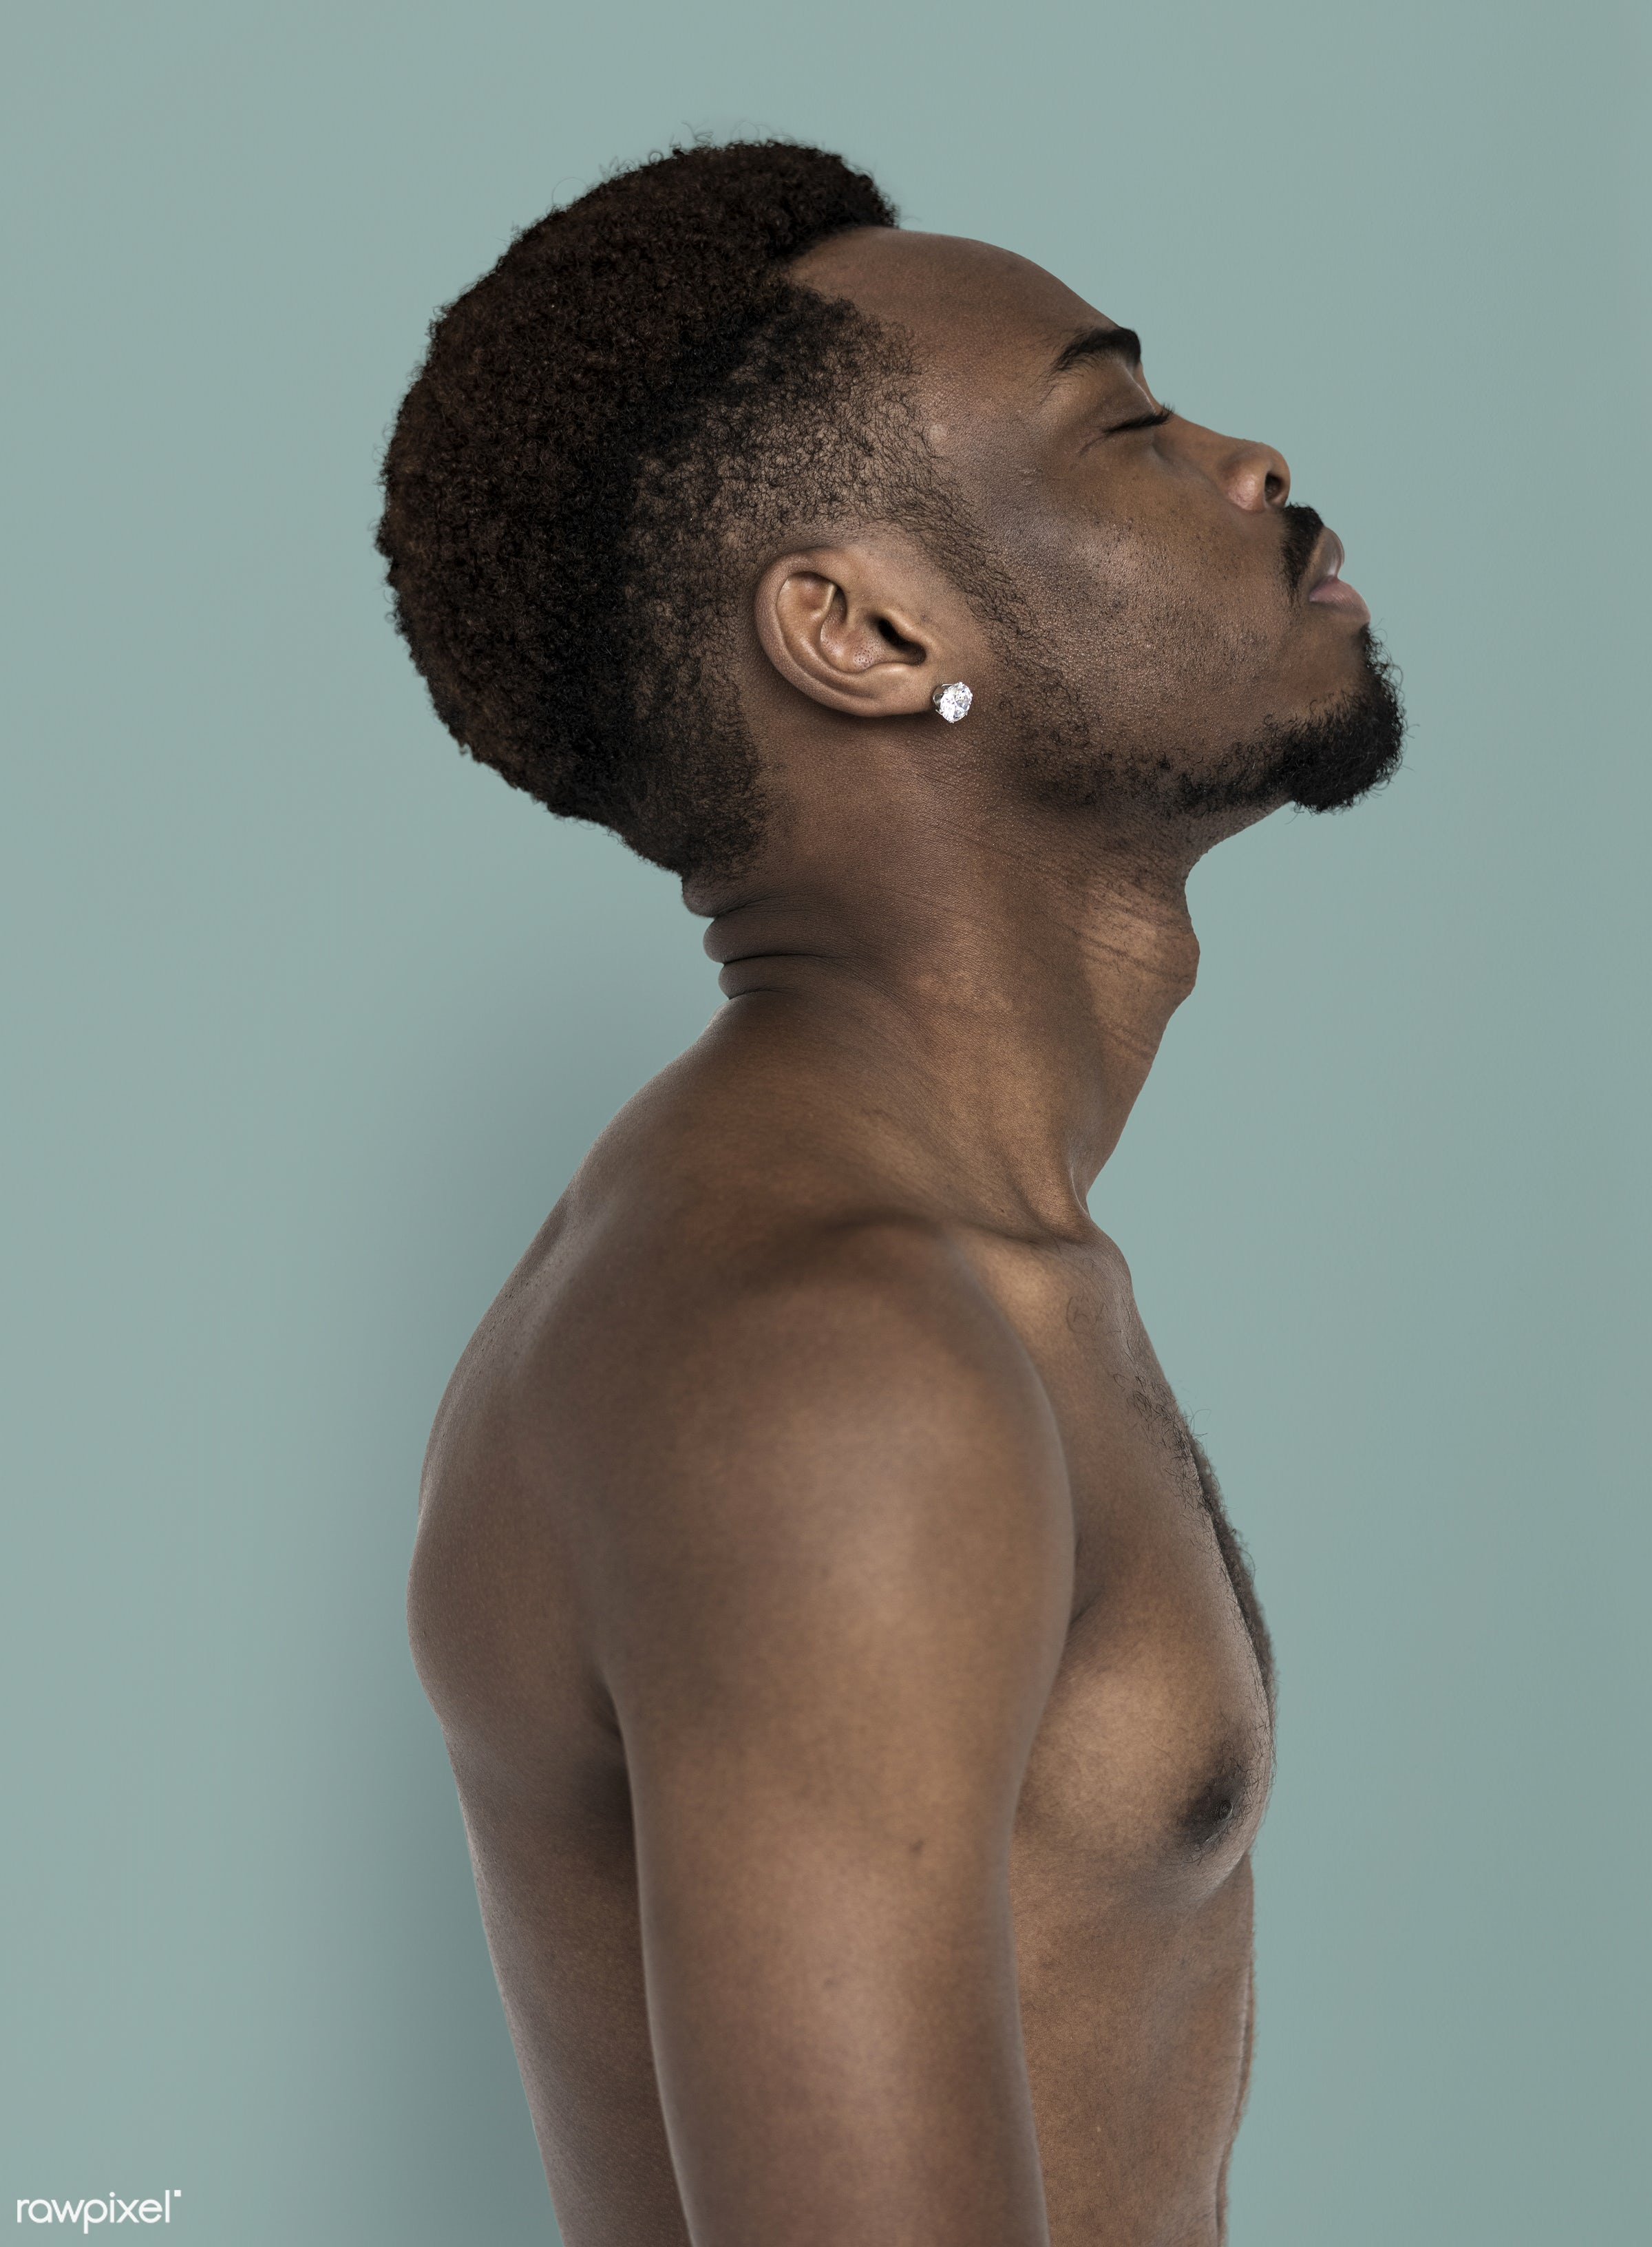 expression, studio, face, body, person, people, face expression, look up, men, man, isolated, think, faith, male, stress,...